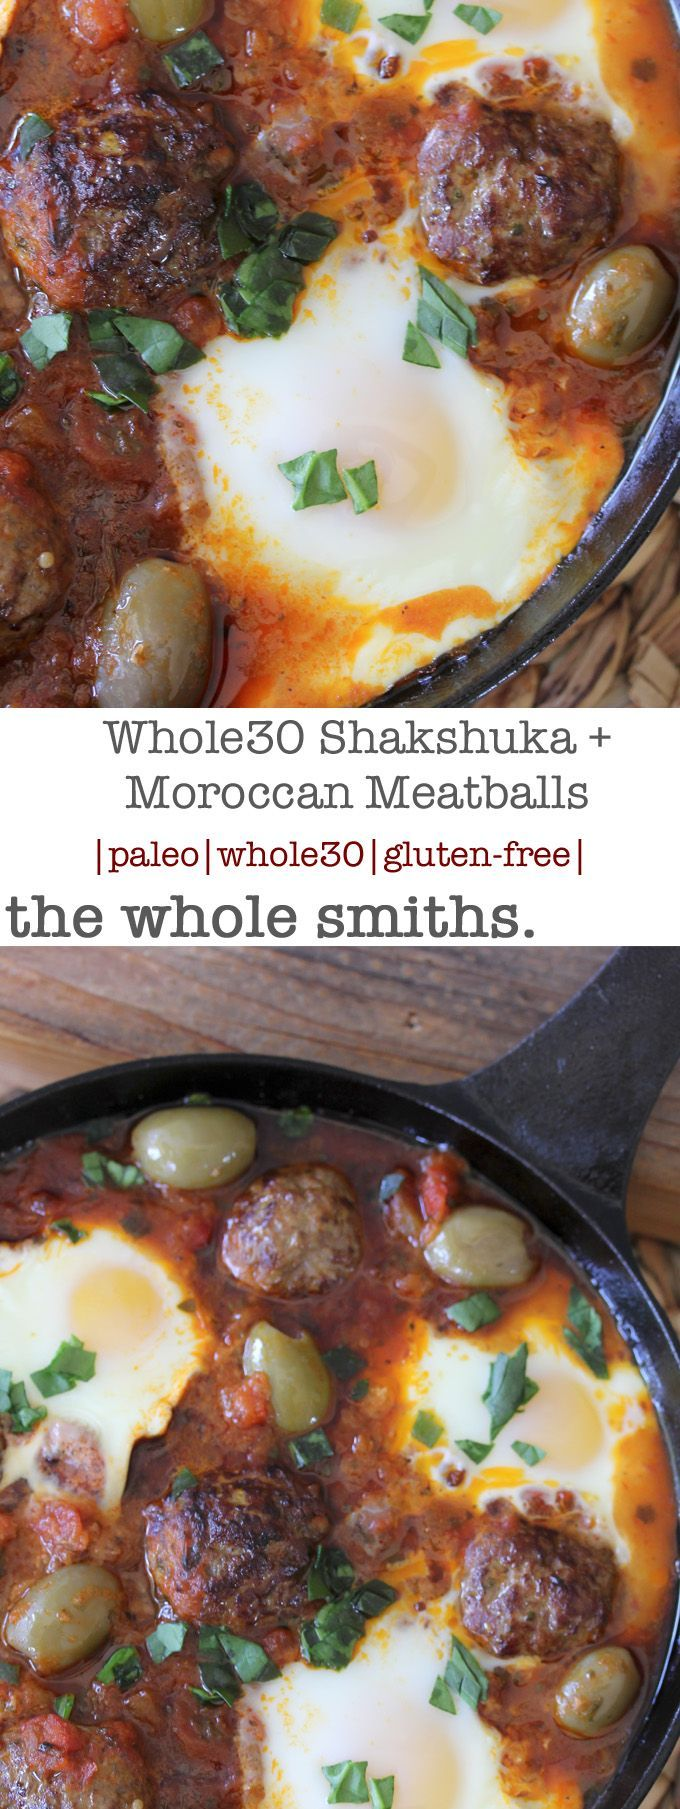 SO freaking good!! Whole30 compliant Shakshuka + Moroccan Spiced Meatballs from the Whole Smiths. An easy-to-make paleo and gluten-free recipe that can be easily added into your weekly meal plans on a regular basis. SO easy!!